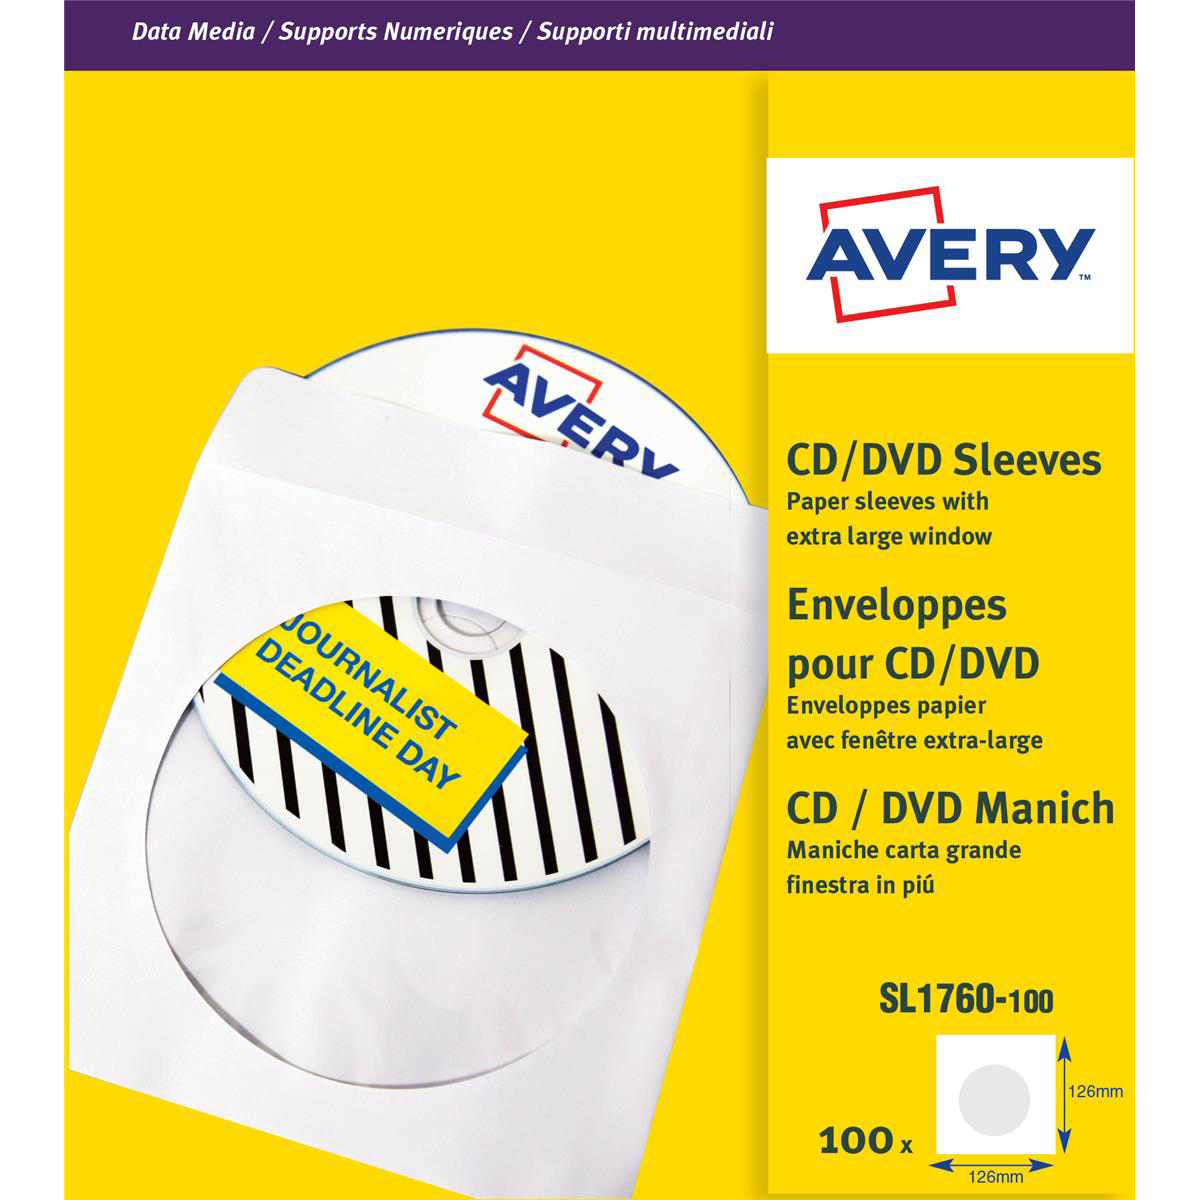 Cases Avery CD/DVD Paper Sleeves with clear window 126x126mm White Ref SL1760-100 Pack 100